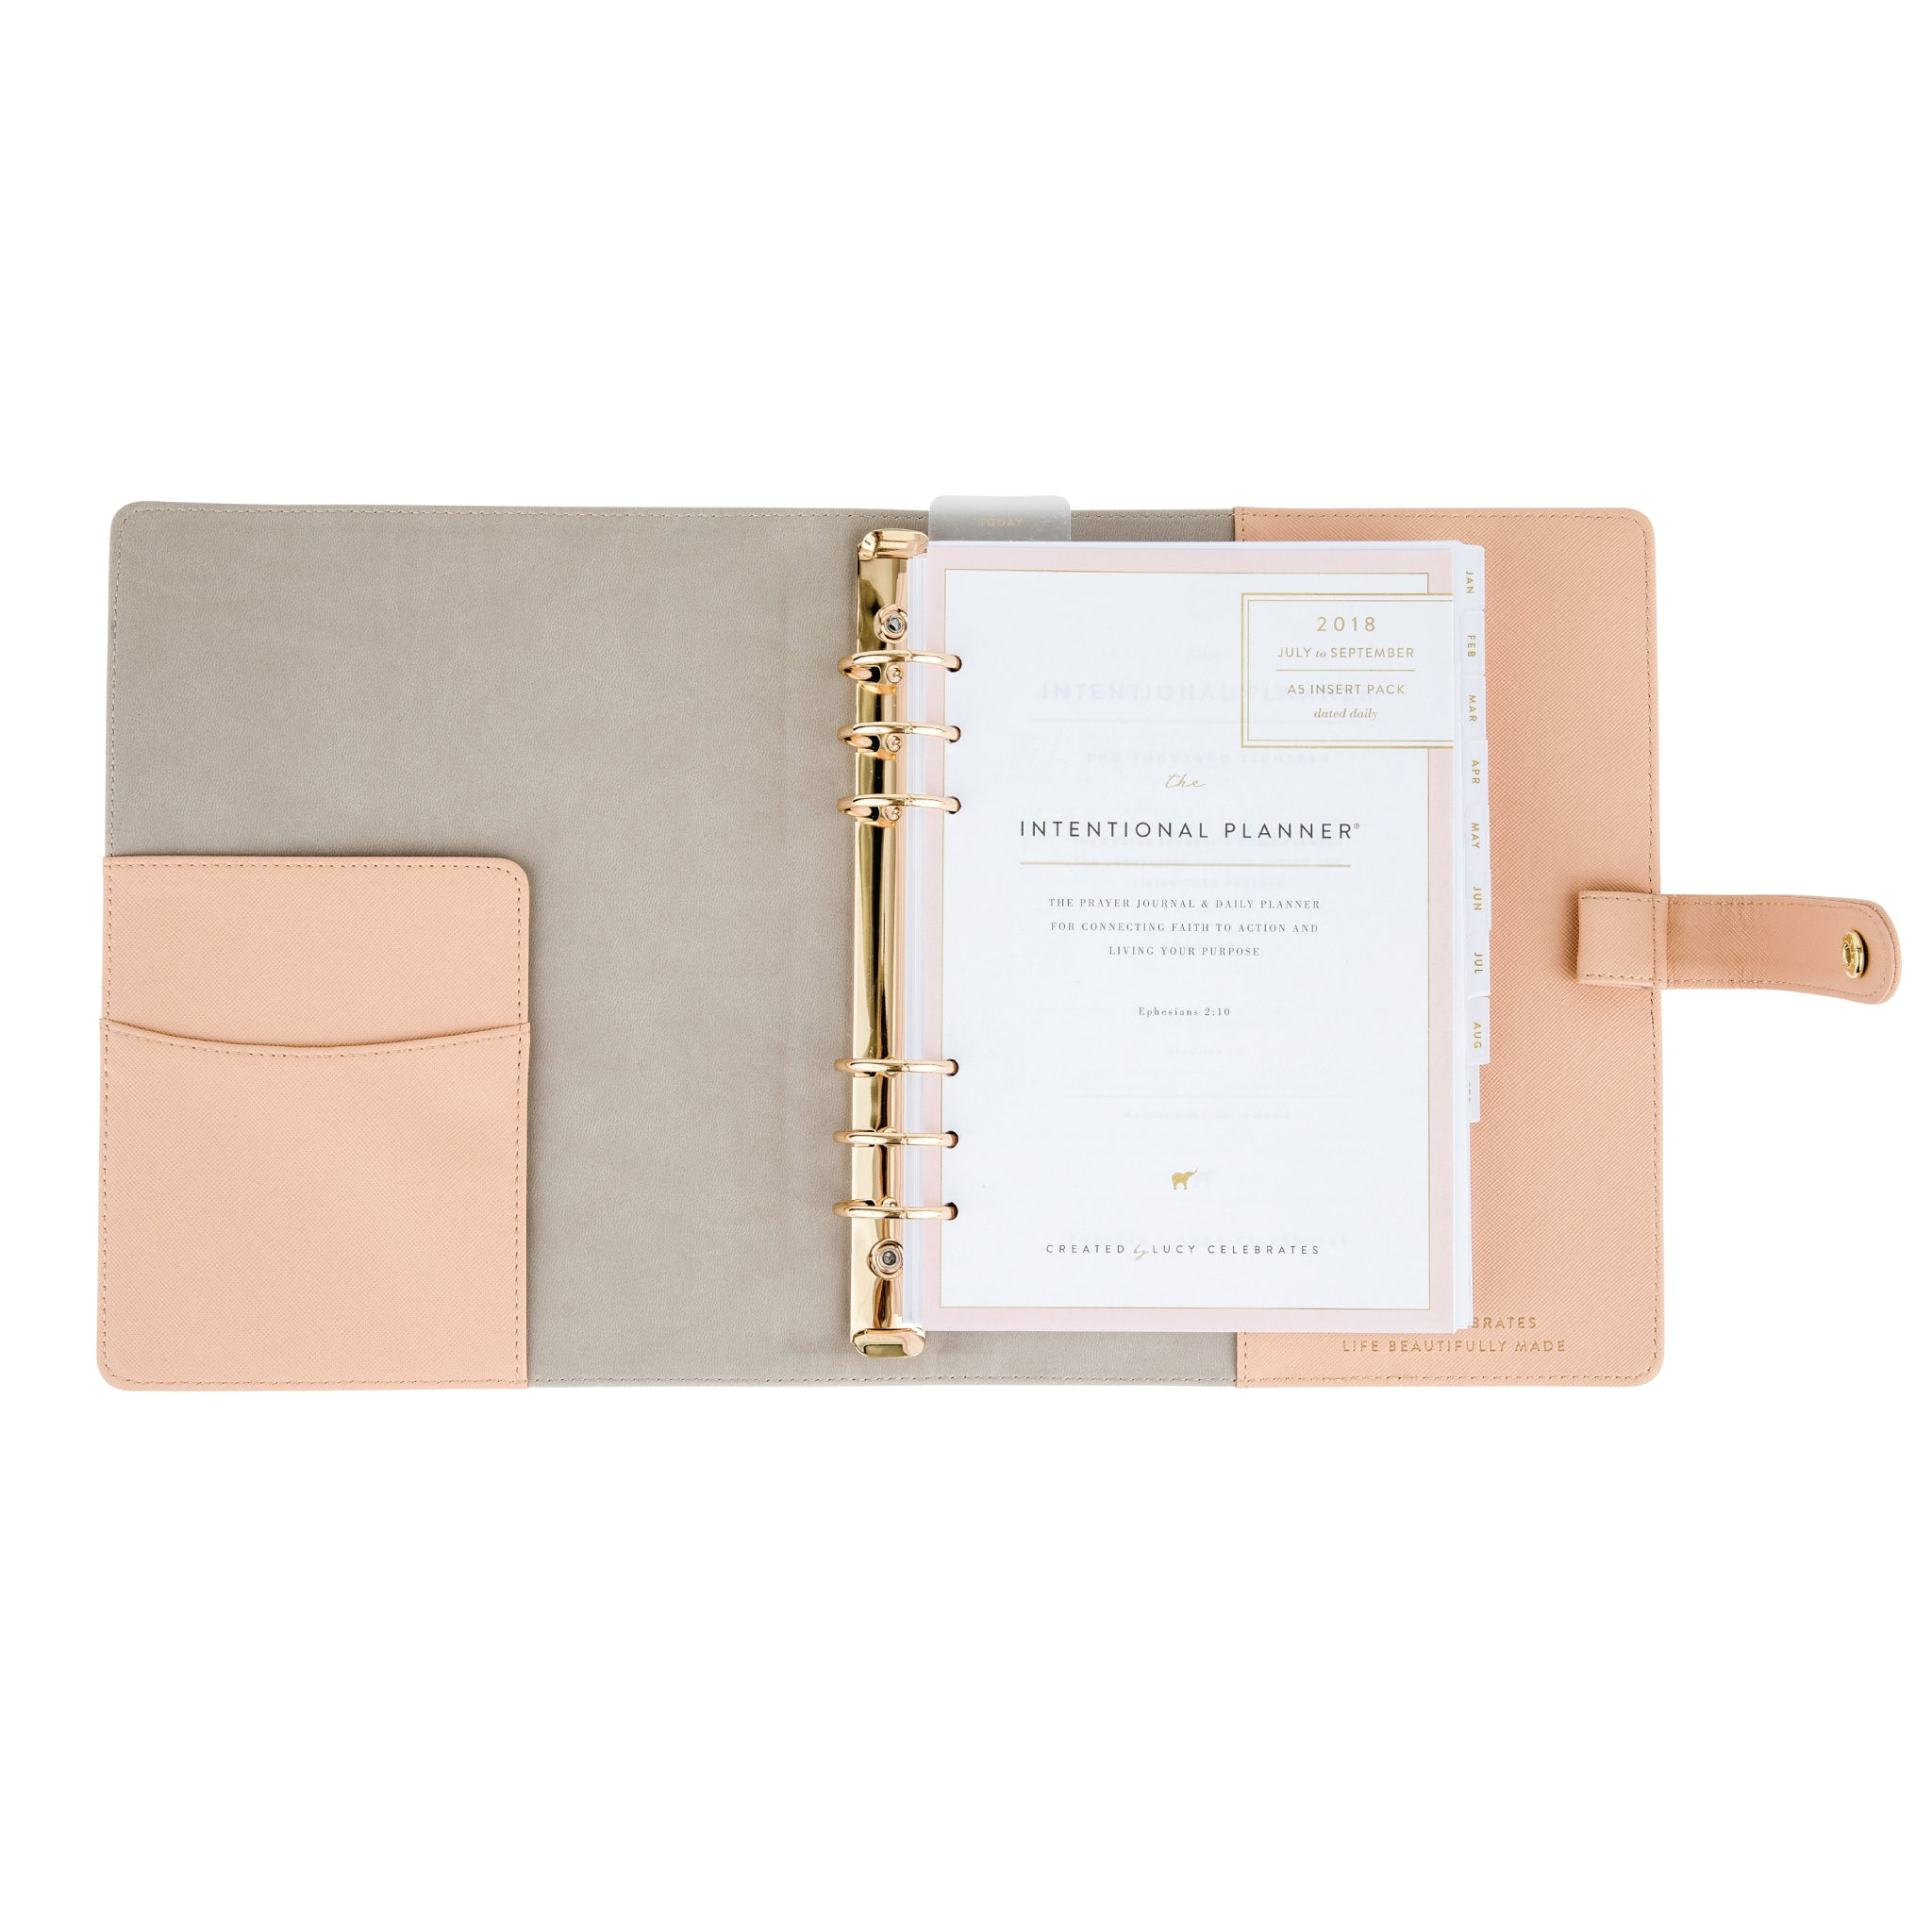 Intentional Planner Perfectly Imperfect Sale!